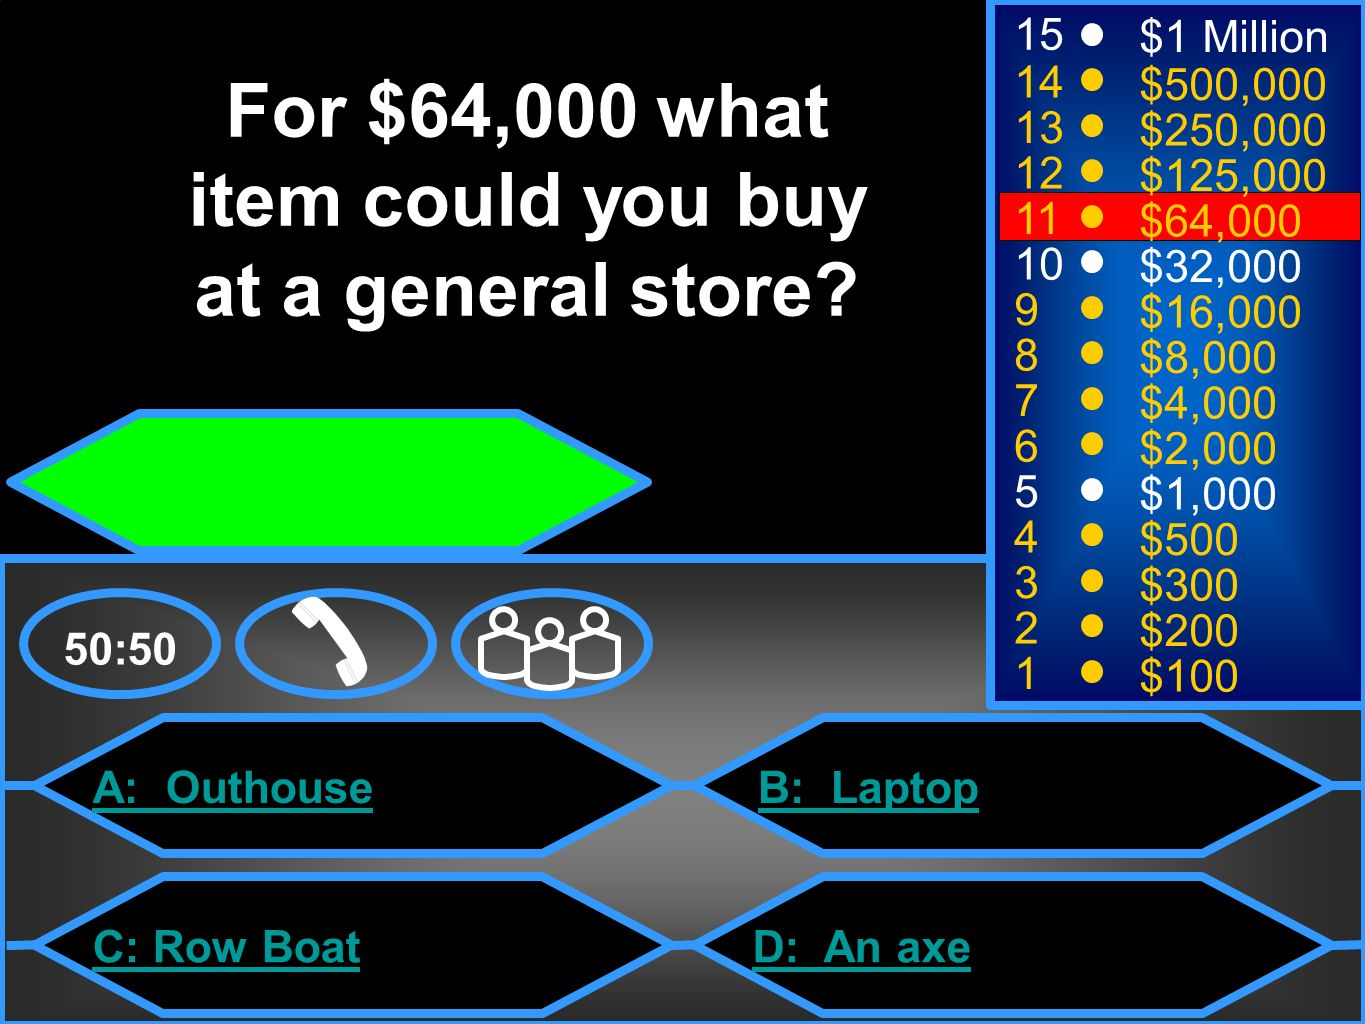 A: Outhouse C: Row Boat B: Laptop D: An axe 50:50 15 14 13 12 11 10 9 8 7 6 5 4 3 2 1 $1 Million $500,000 $250,000 $125,000 $64,000 $32,000 $16,000 $8,000 $4,000 $2,000 $1,000 $500 $300 $200 $100 For $64,000 what item could you buy at a general store